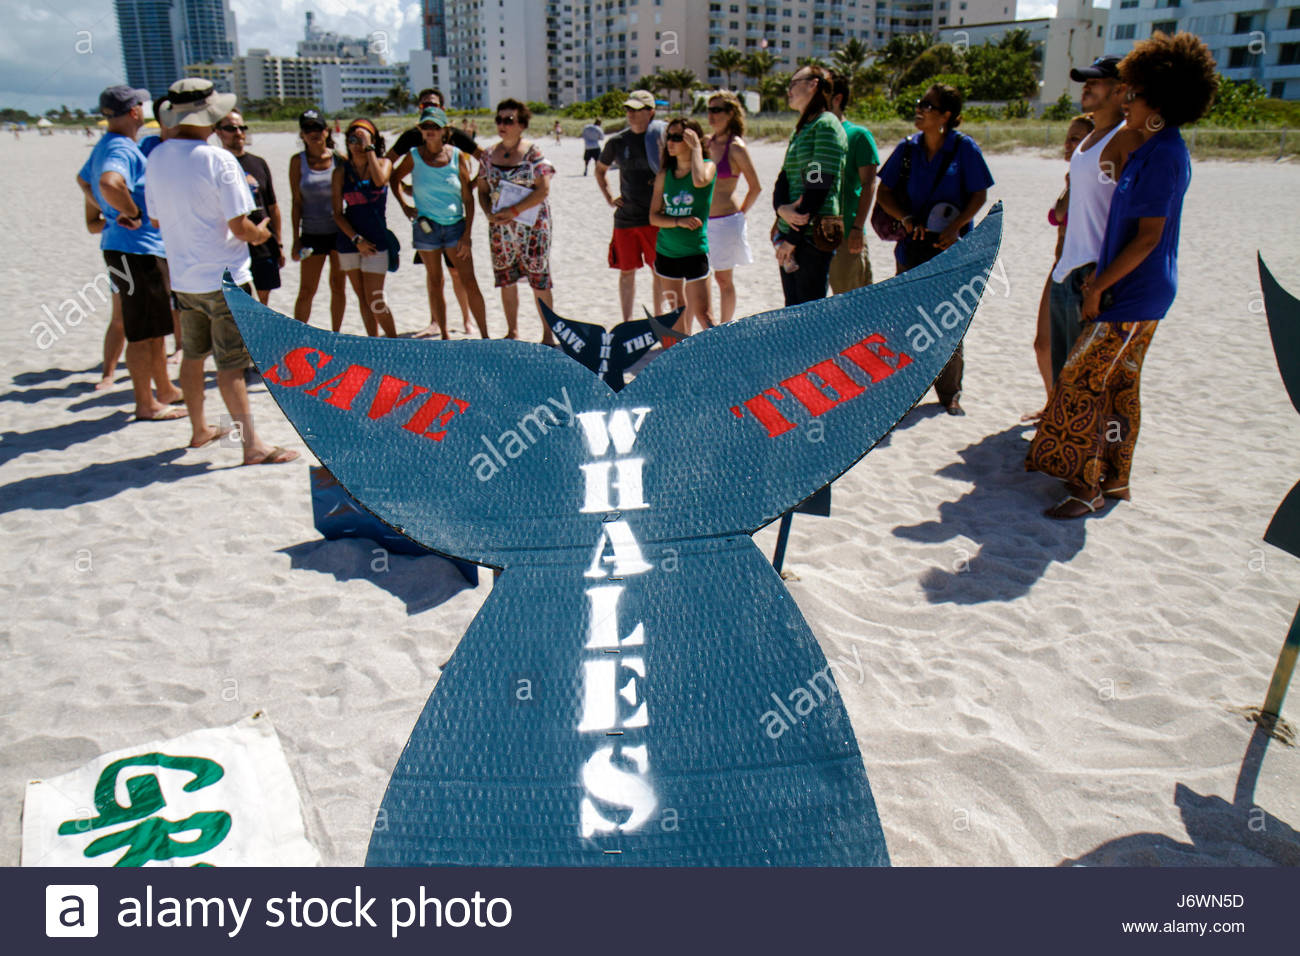 Miami Beach Florida Greenpeace demonstration protest Save the Whales organizer organizing sign group supporters - Stock Image